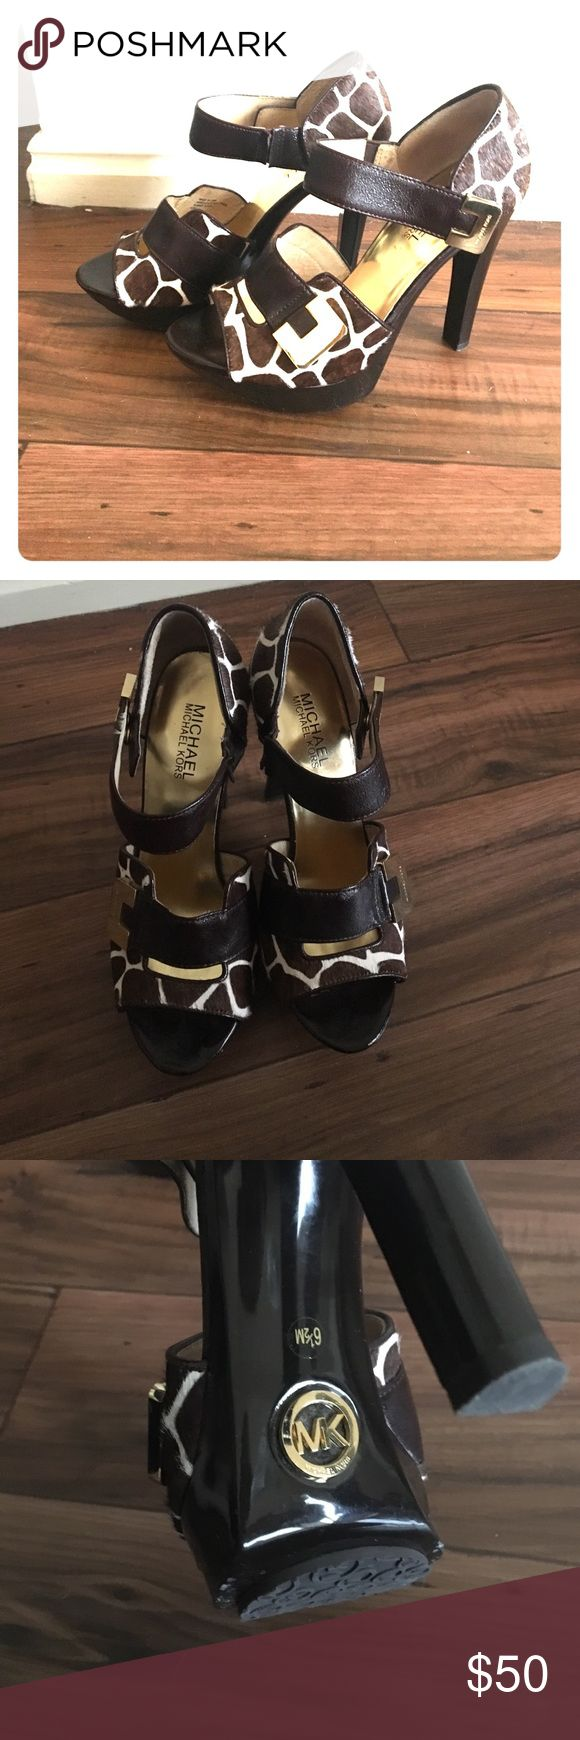 Michael Kors - Size 6 1/2, 4 inch heels Classy Cow print,  gold latches, tip latches unsnap and have 2 size options,  gold soles,  deep brown 4 inch heels, set 1 inch off ground. Michael Kors Shoes Heels